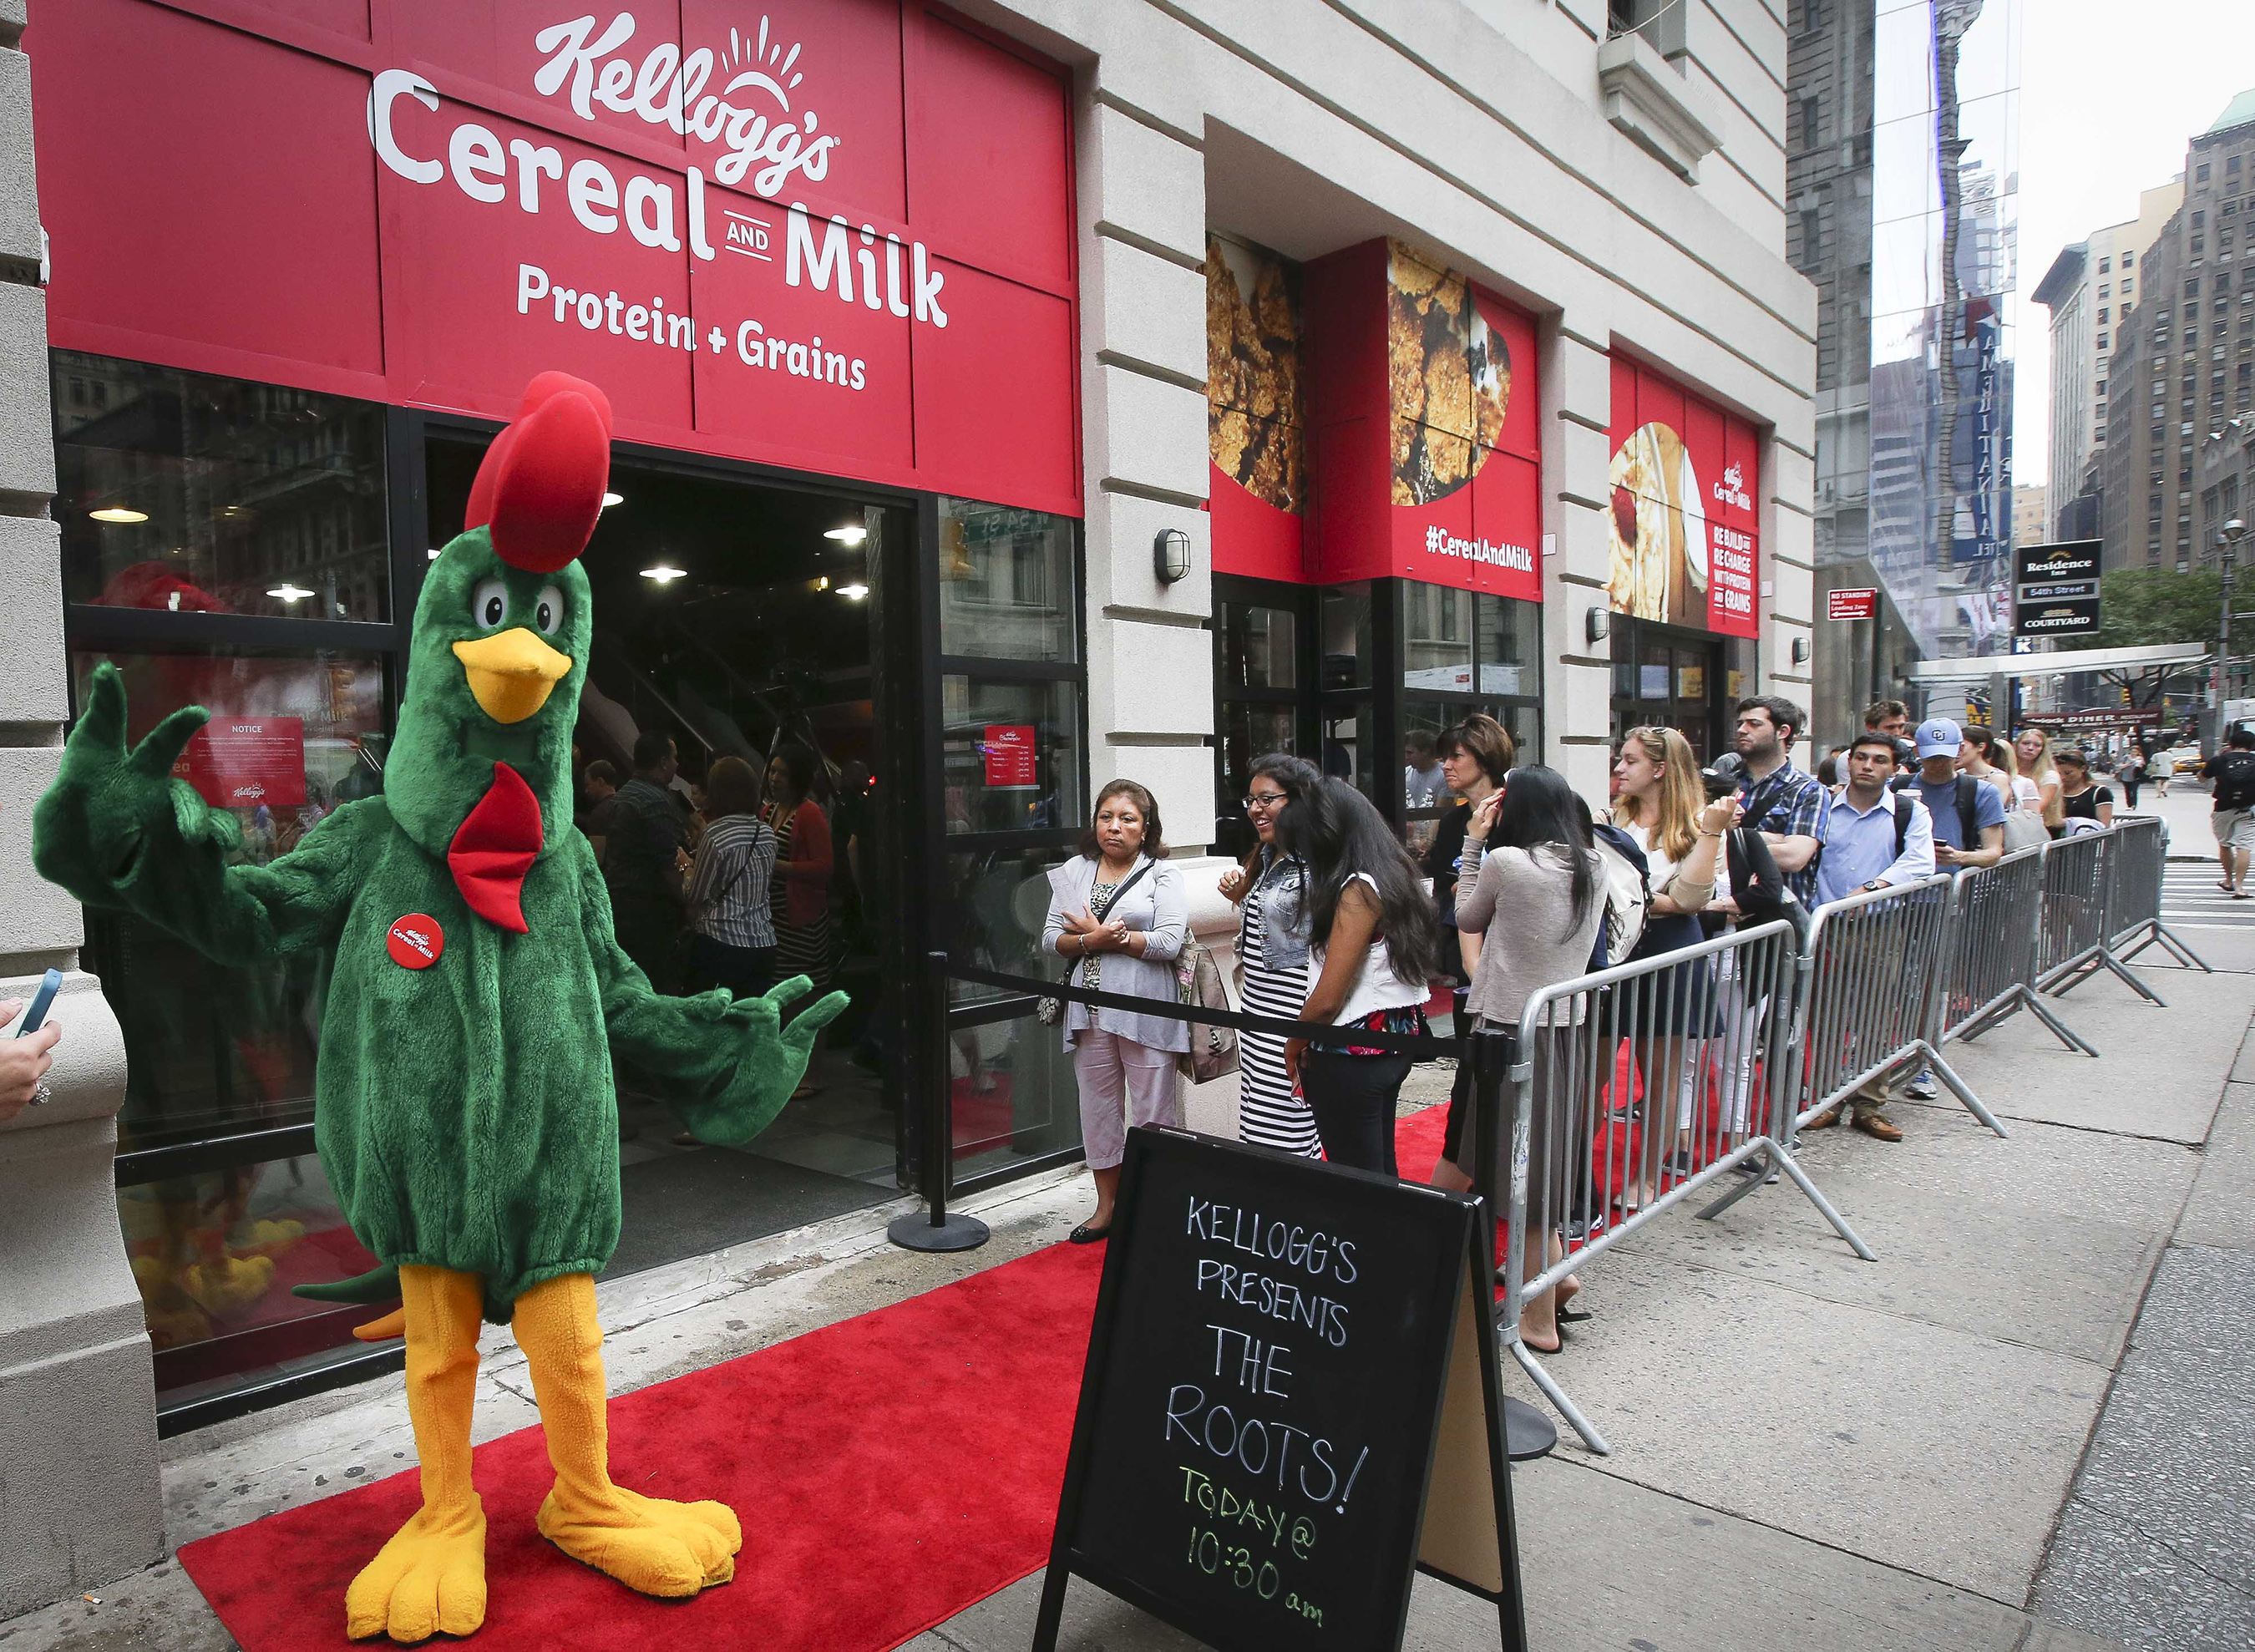 Fans line up to see Grammy Award-winning band The Roots at Kellogg's Recharge Bar